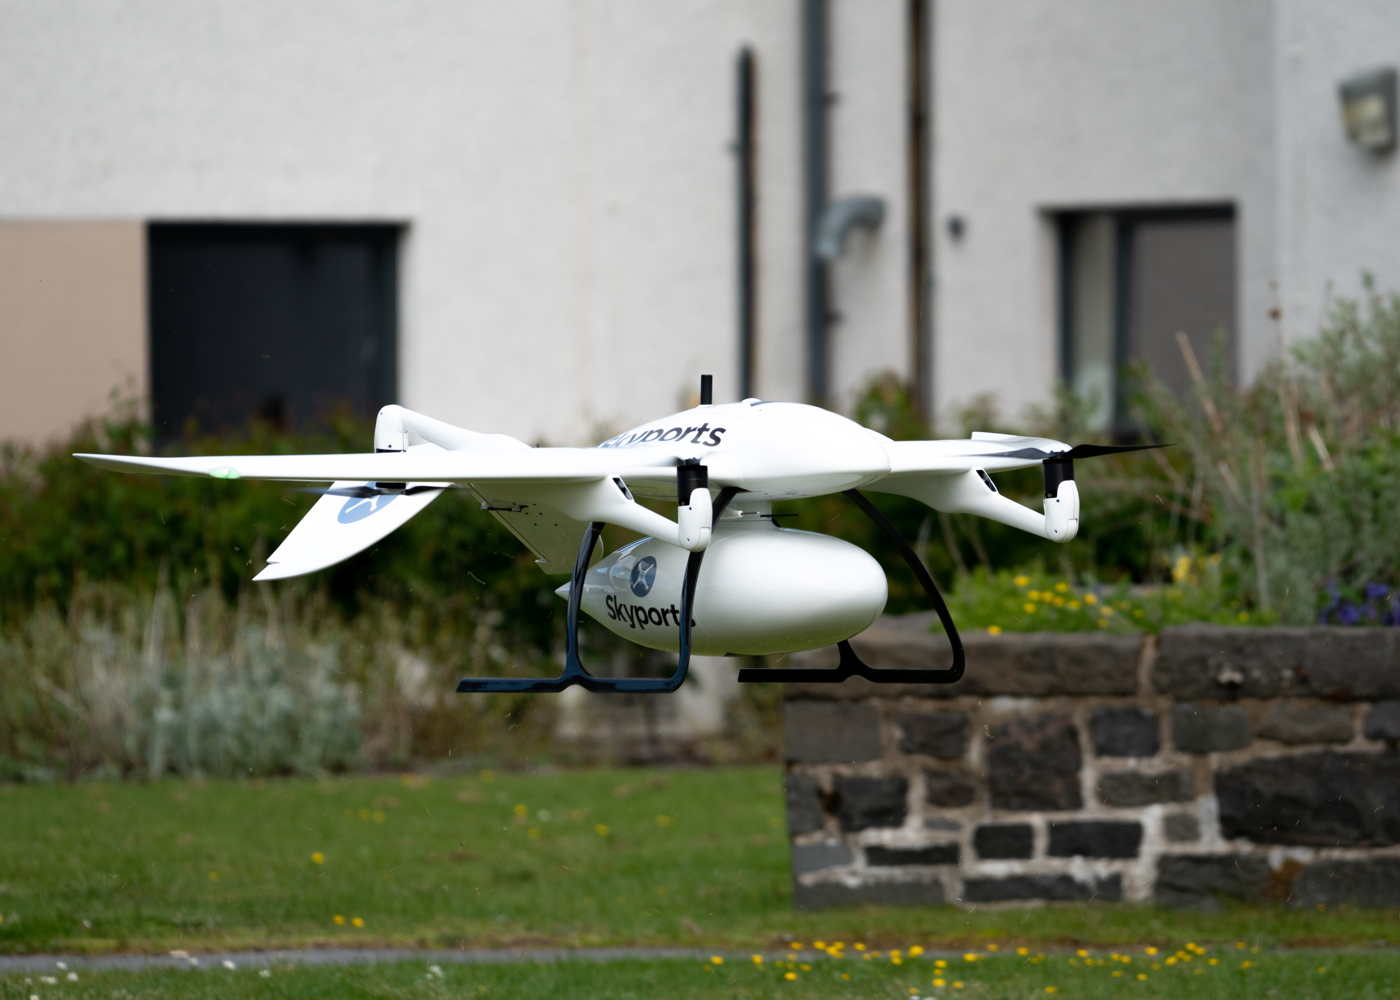 Wingcopter drone in Skyports trial